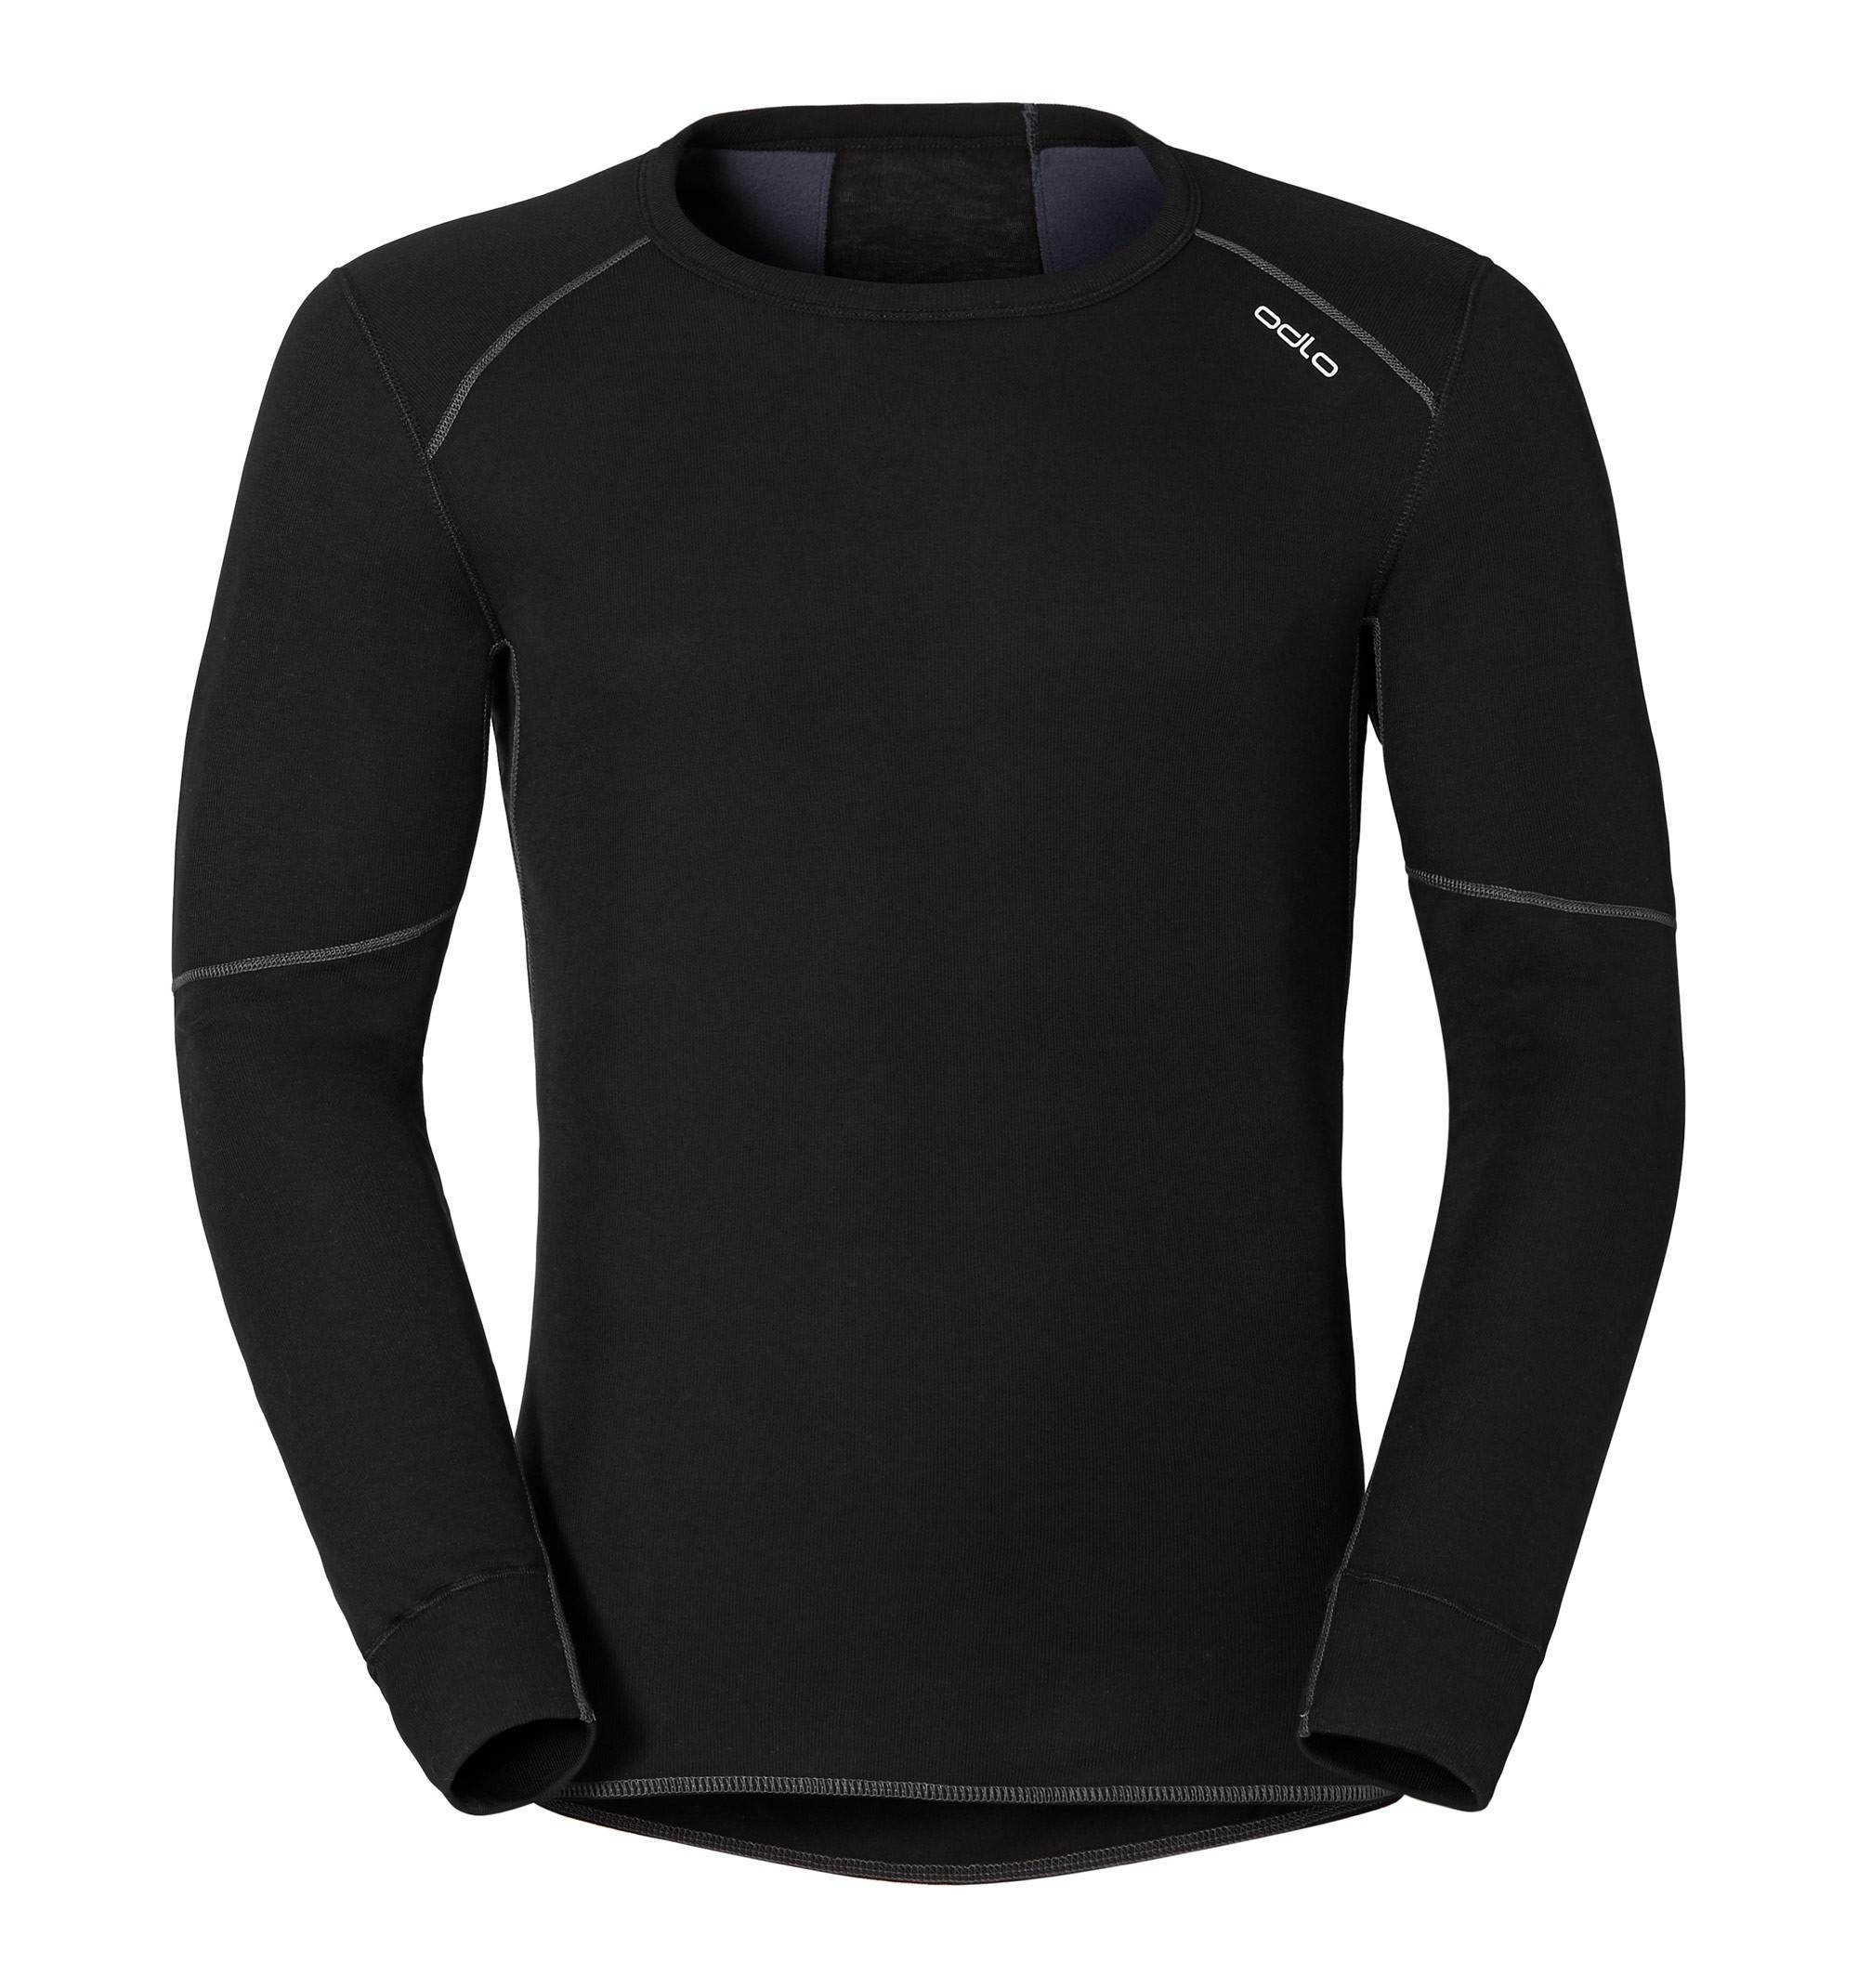 Термофутболка Odlo L/S Crew Neck X-Warm Black L (155162)